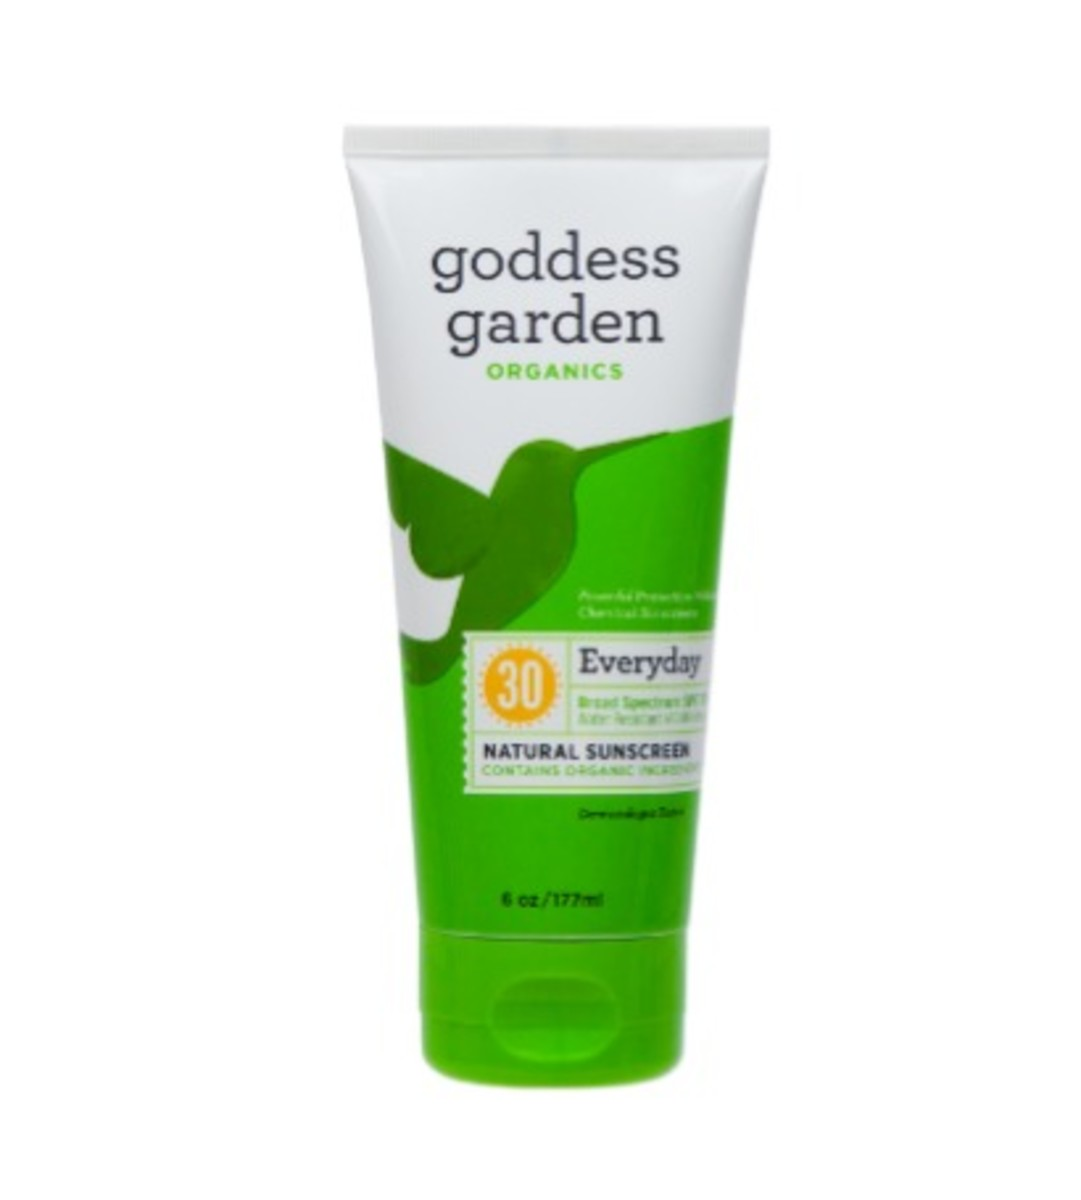 Safest Sunscreen Products Goddess Garden